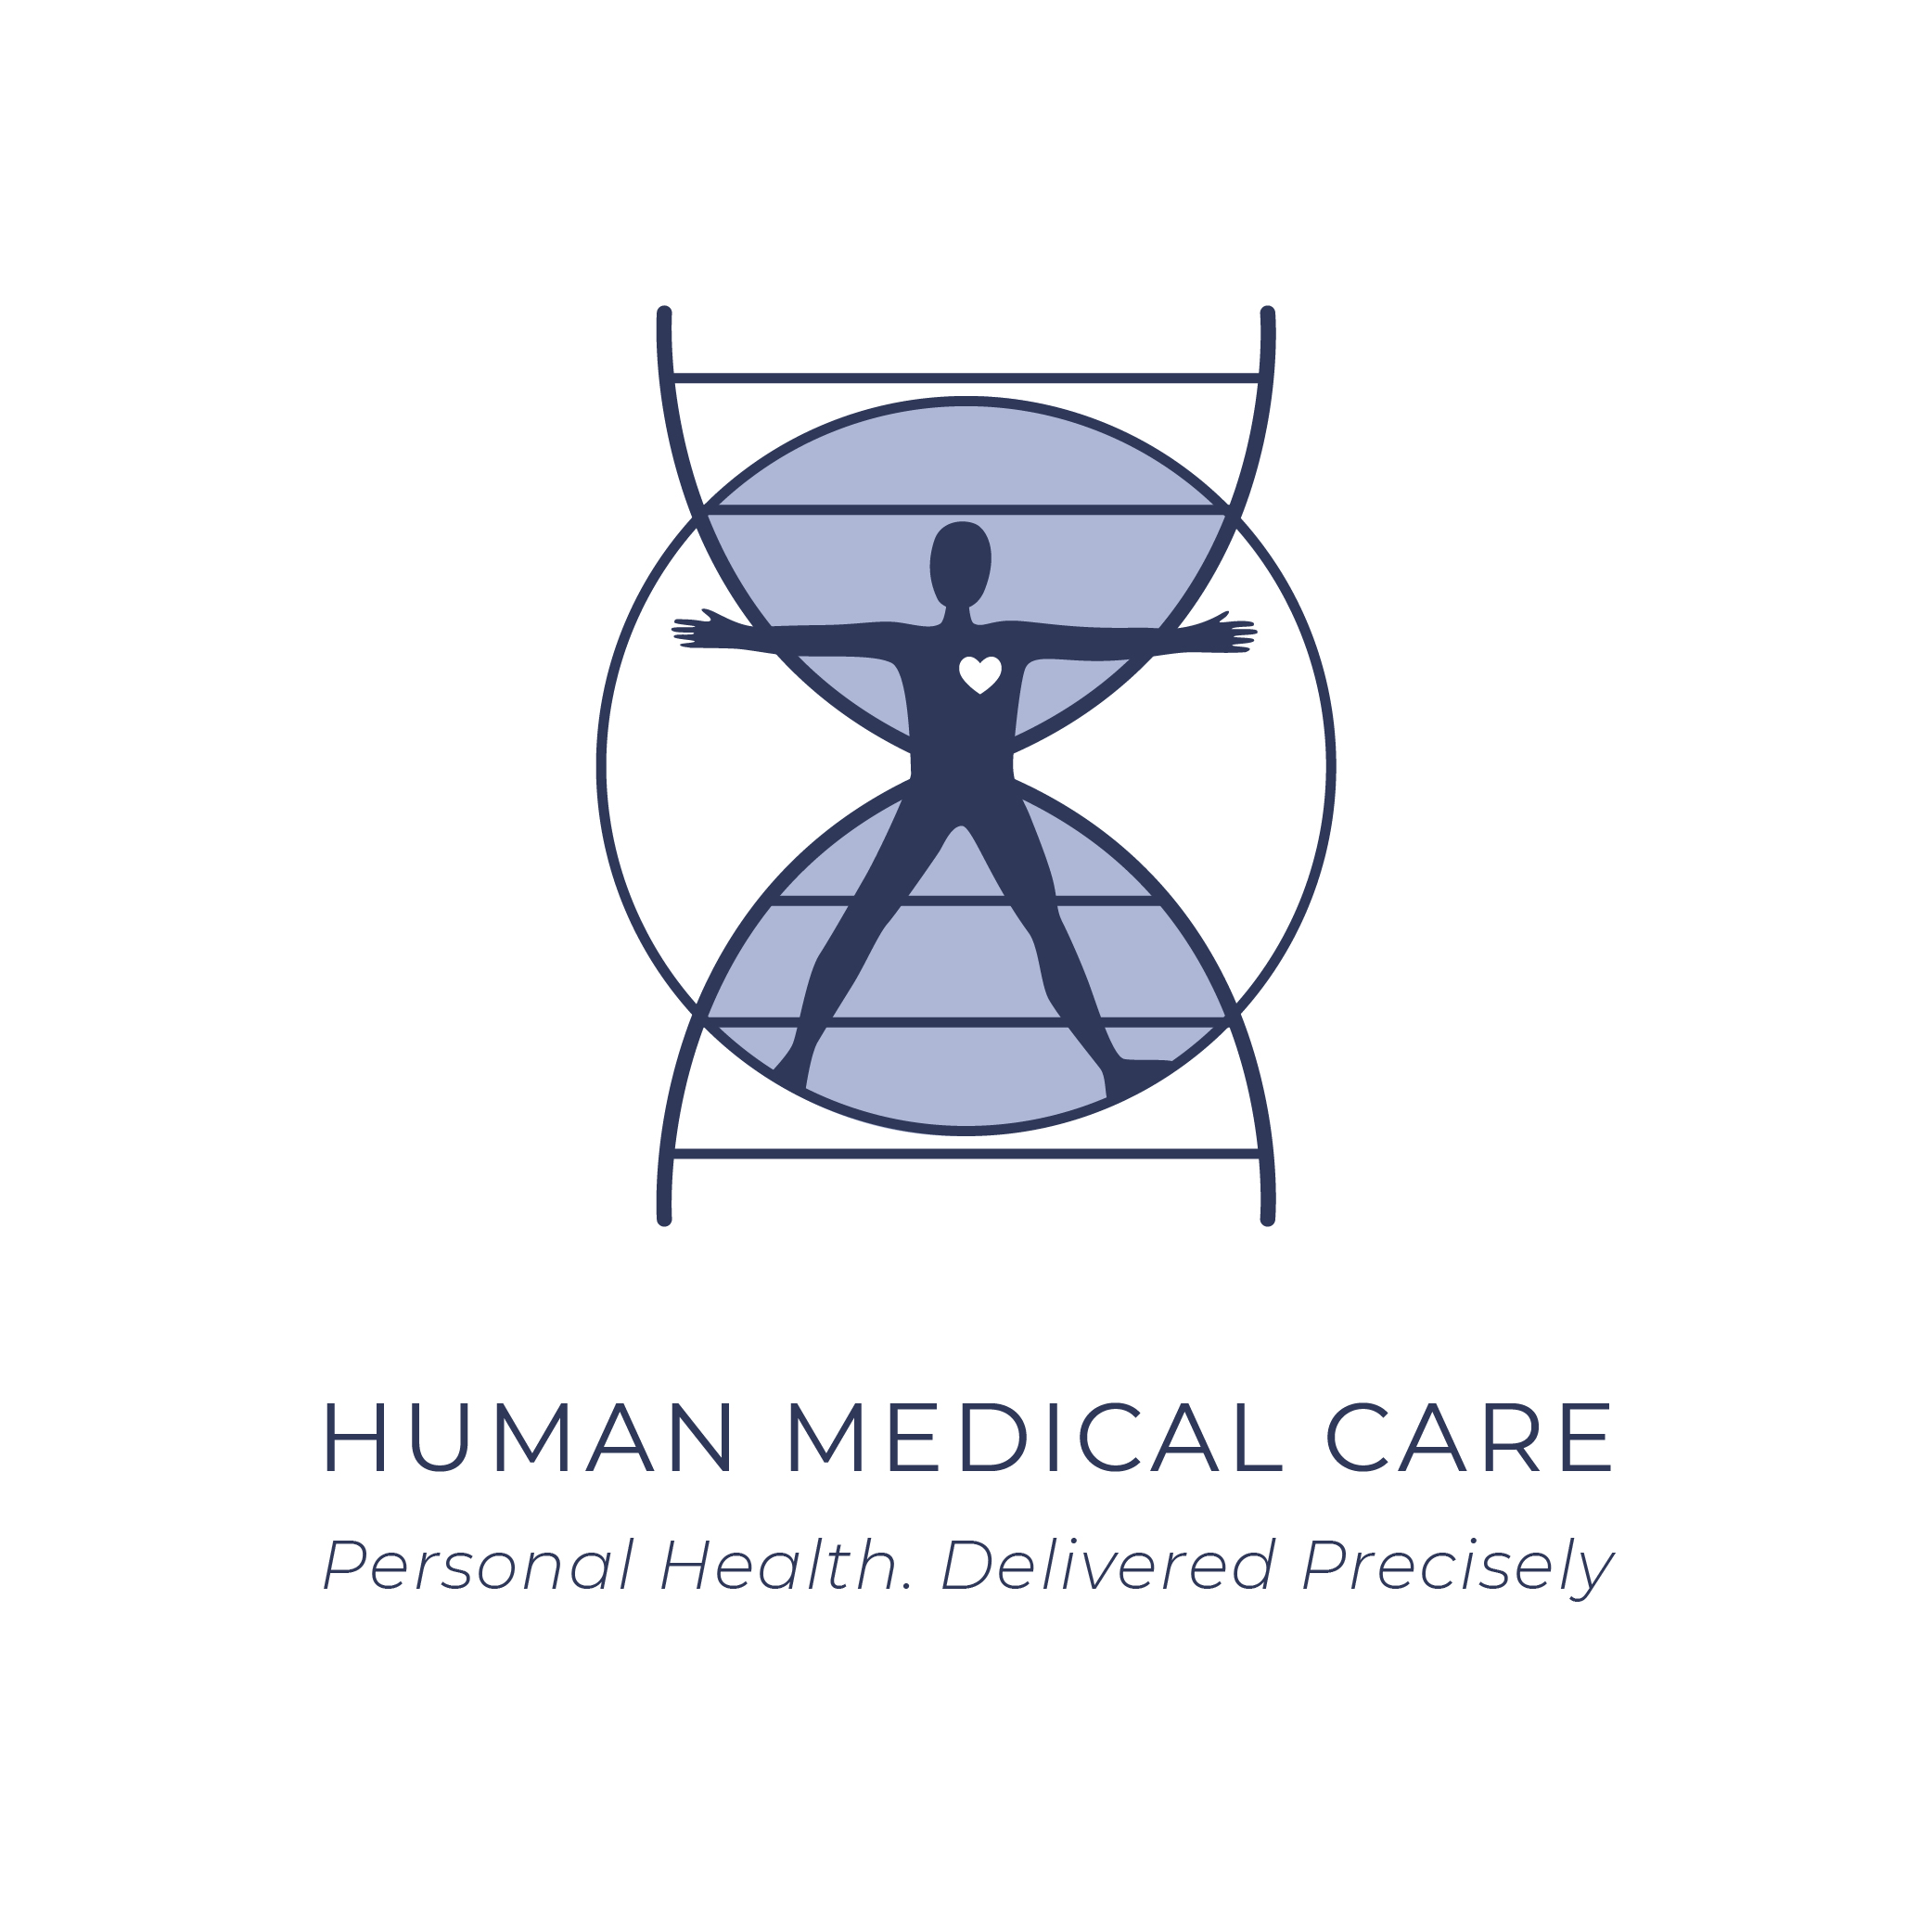 LOGO HUMAN MEDICAL CARE FINAL copy-02.jpg